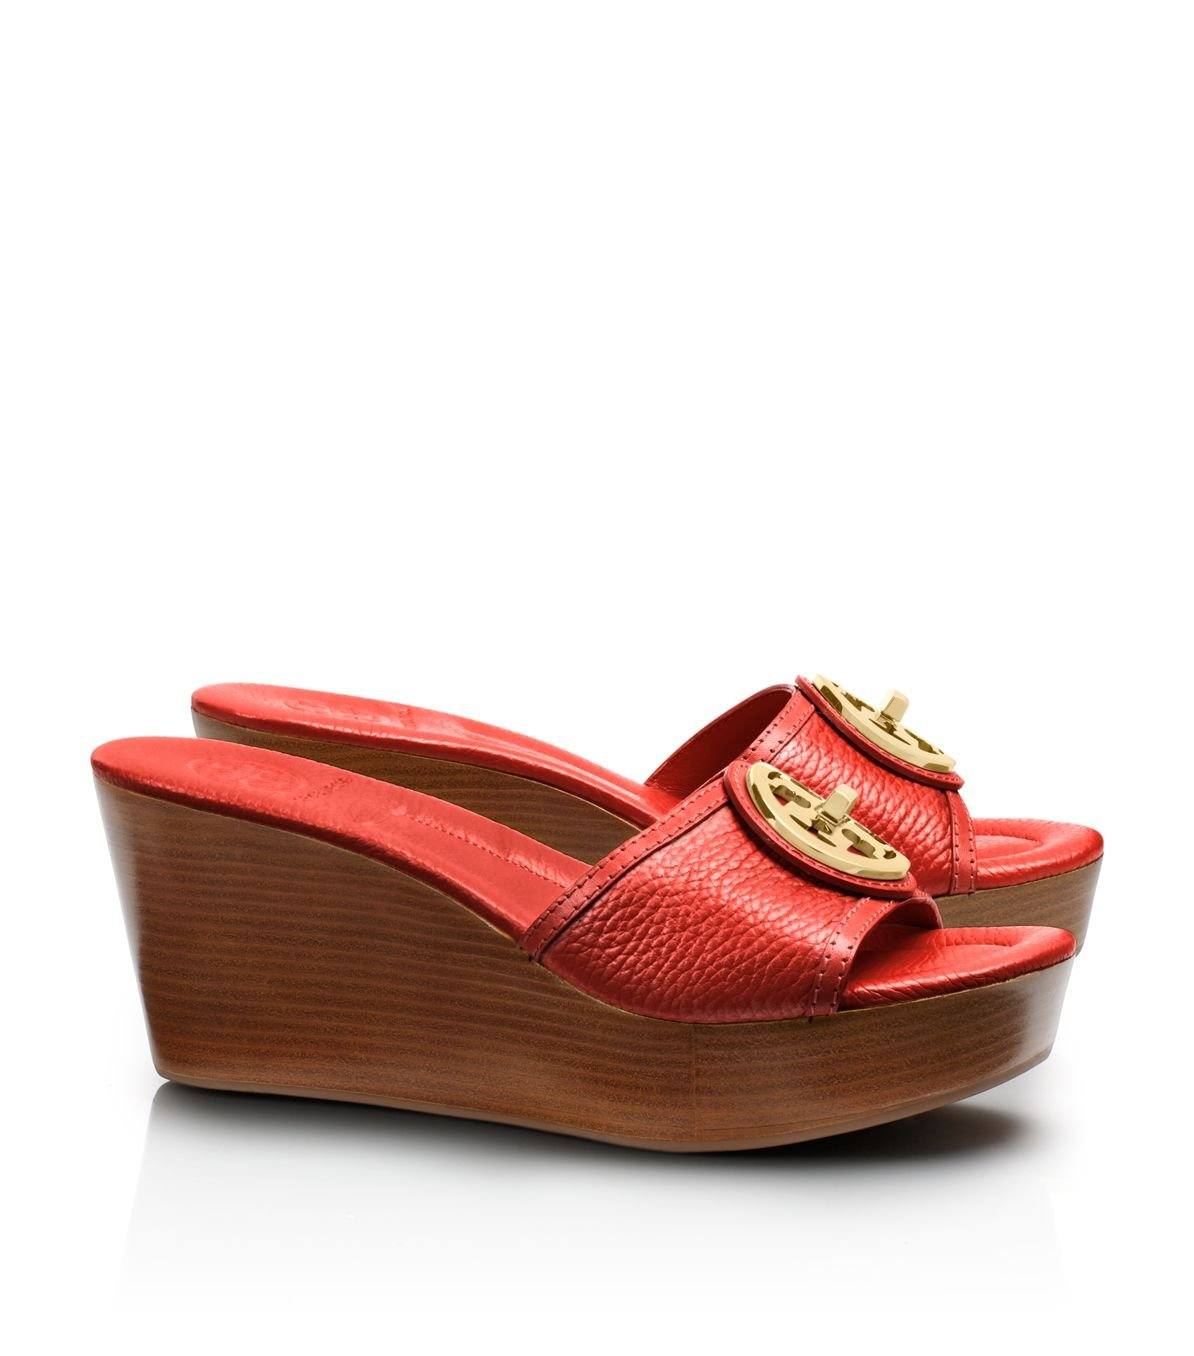 e36425dc398e Tory Burch Selma Mid Wedge Slide in Red - Lyst